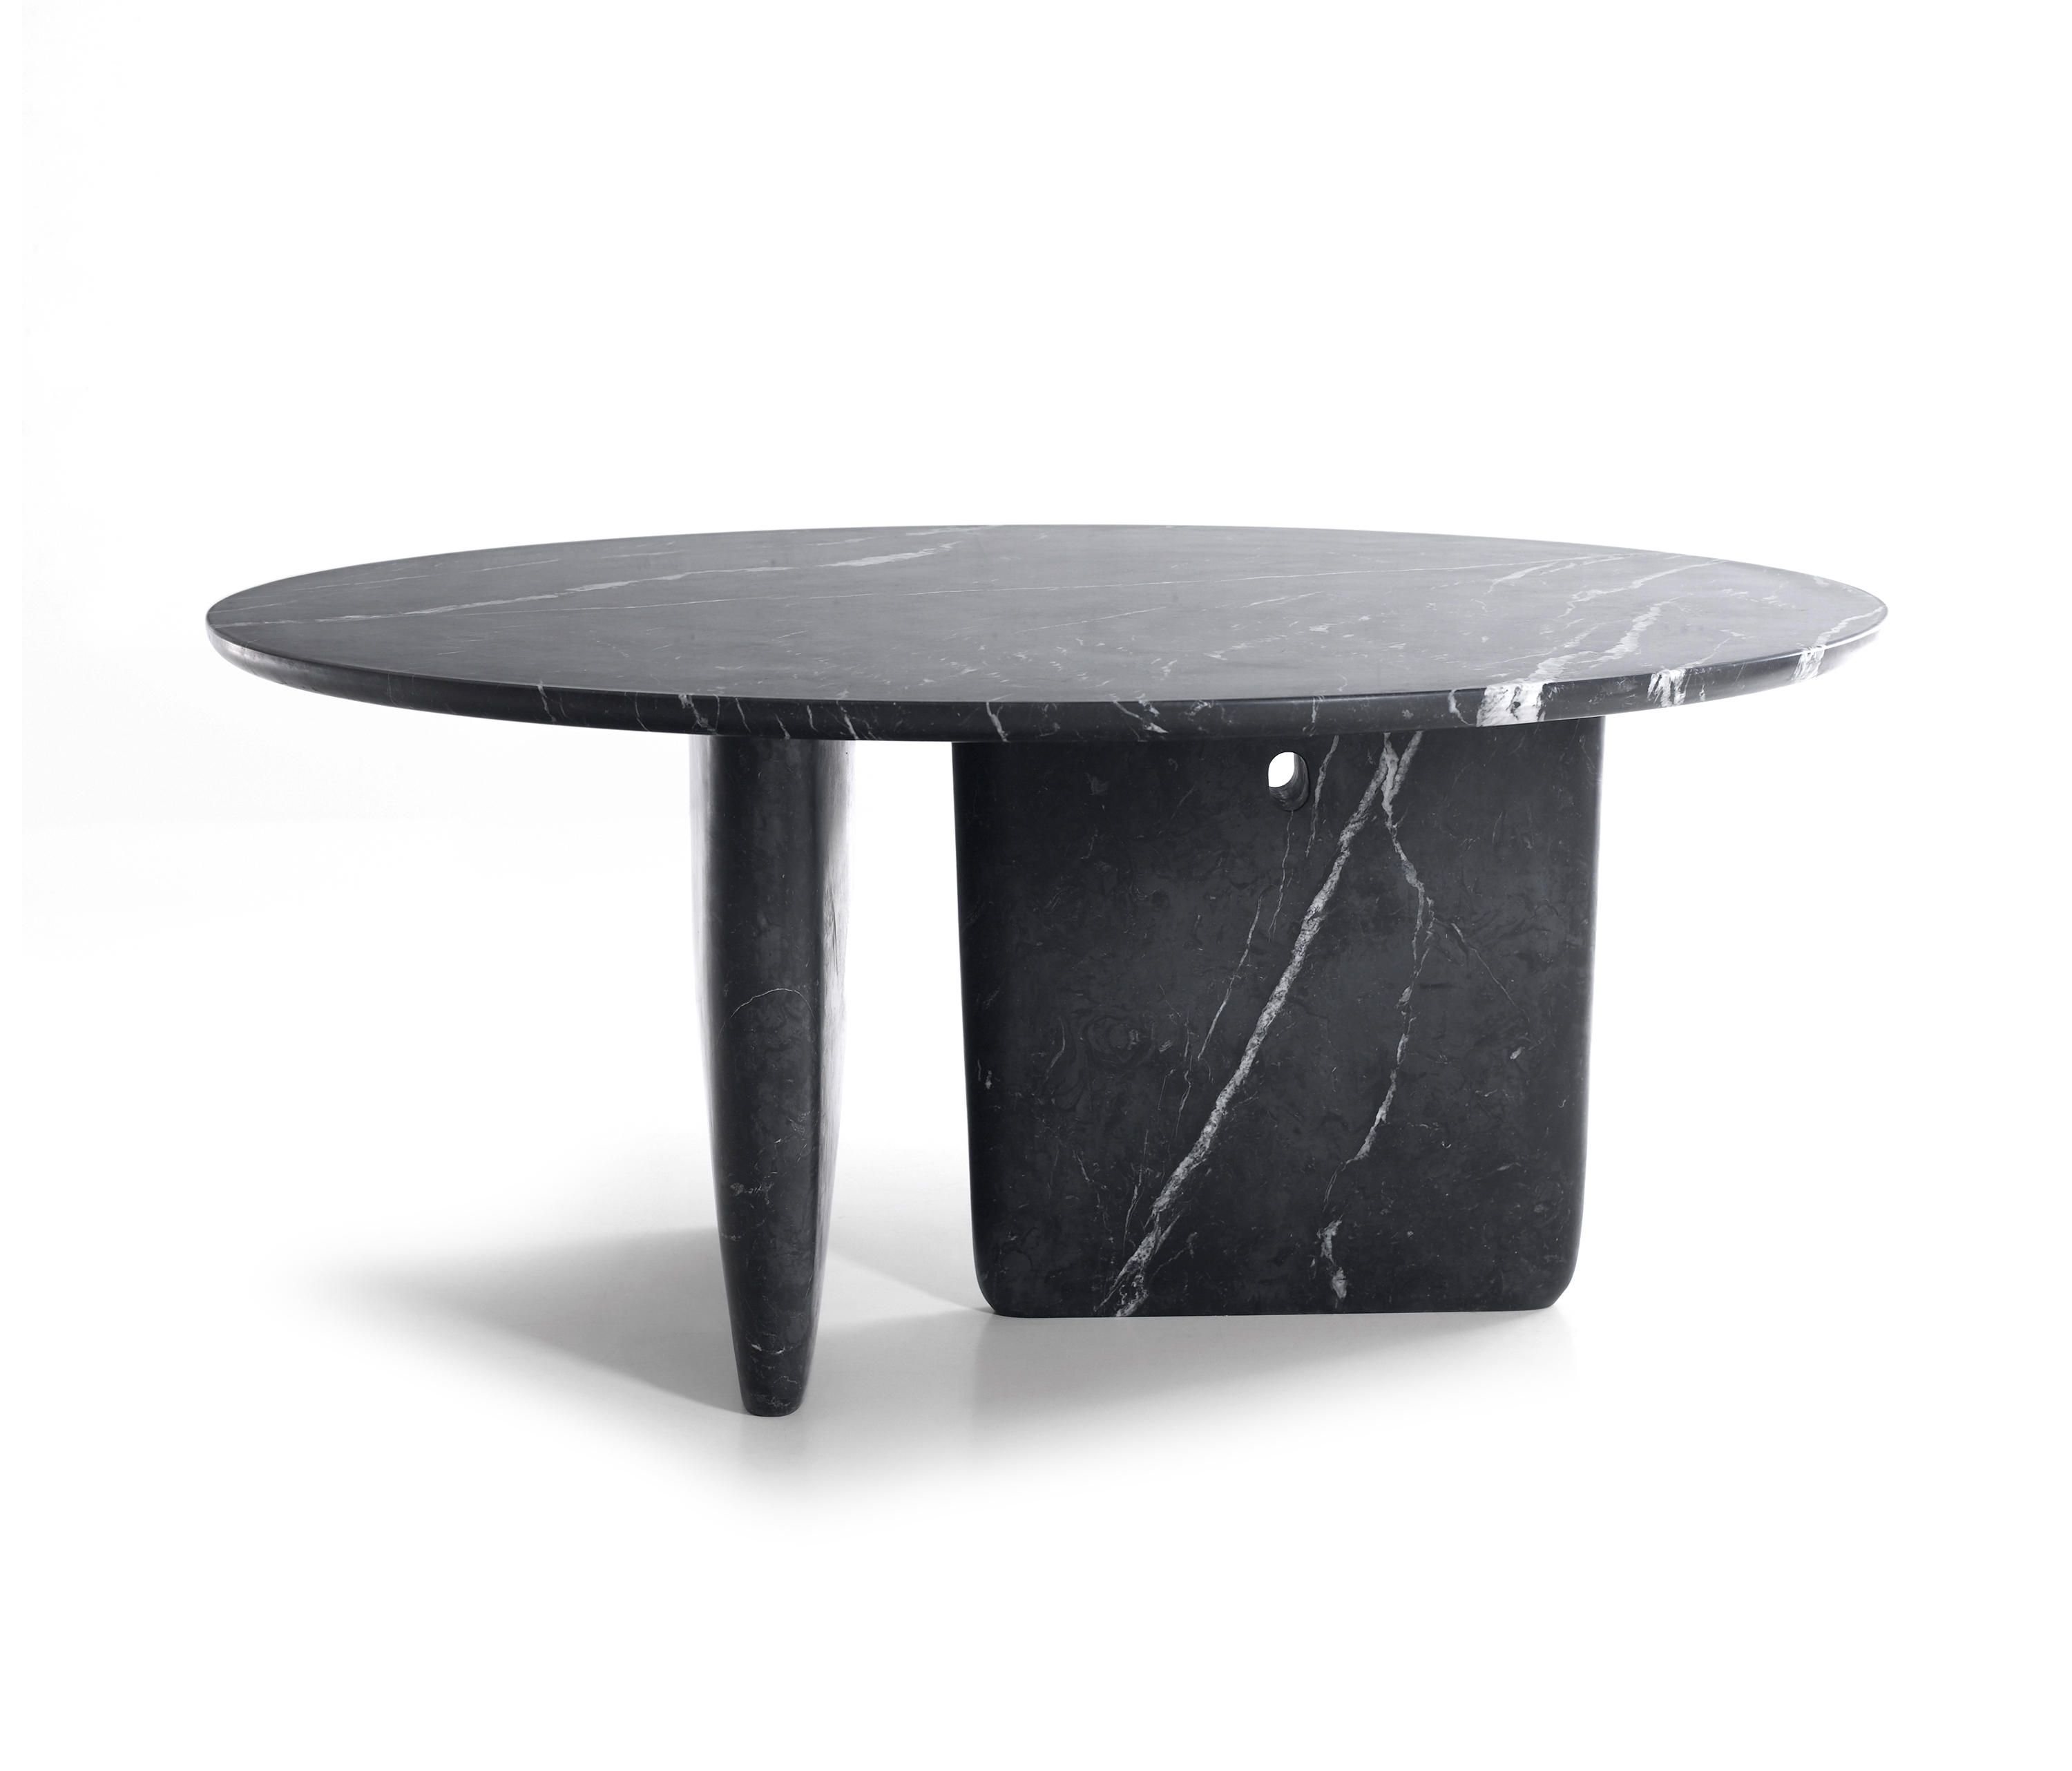 TOBI ISHI Meeting room tables from B&B Italia